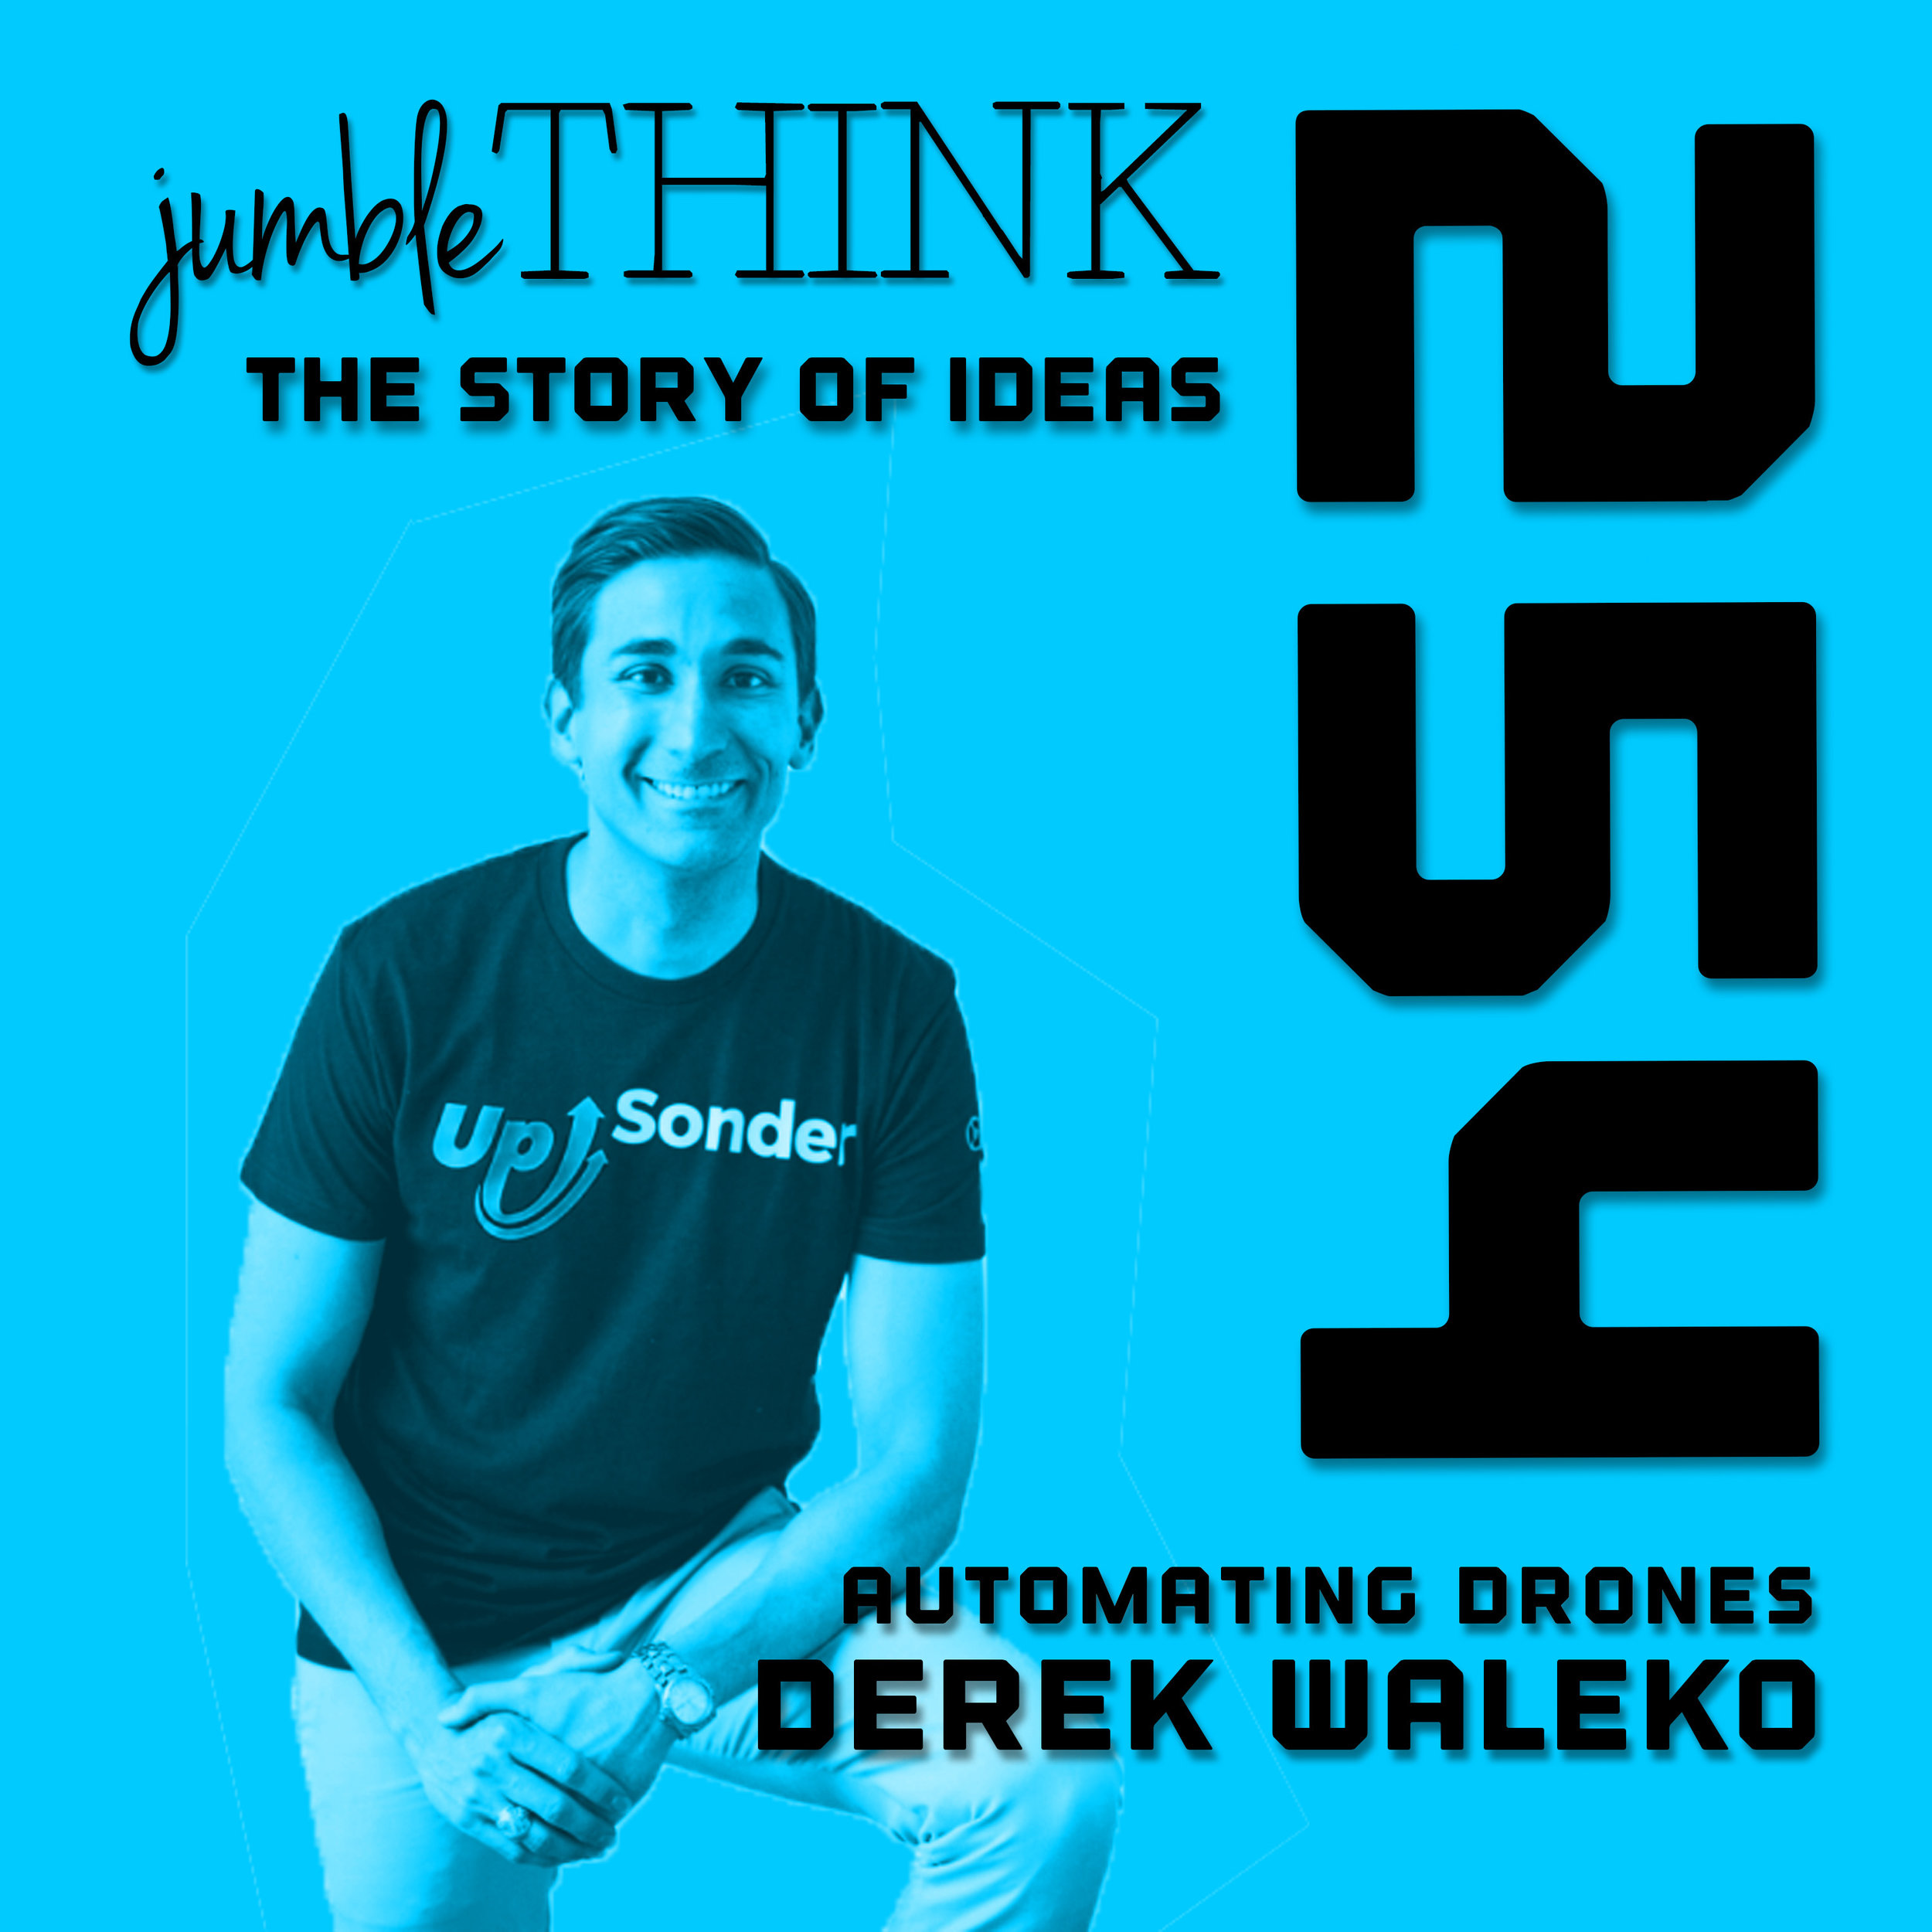 Automating Drones